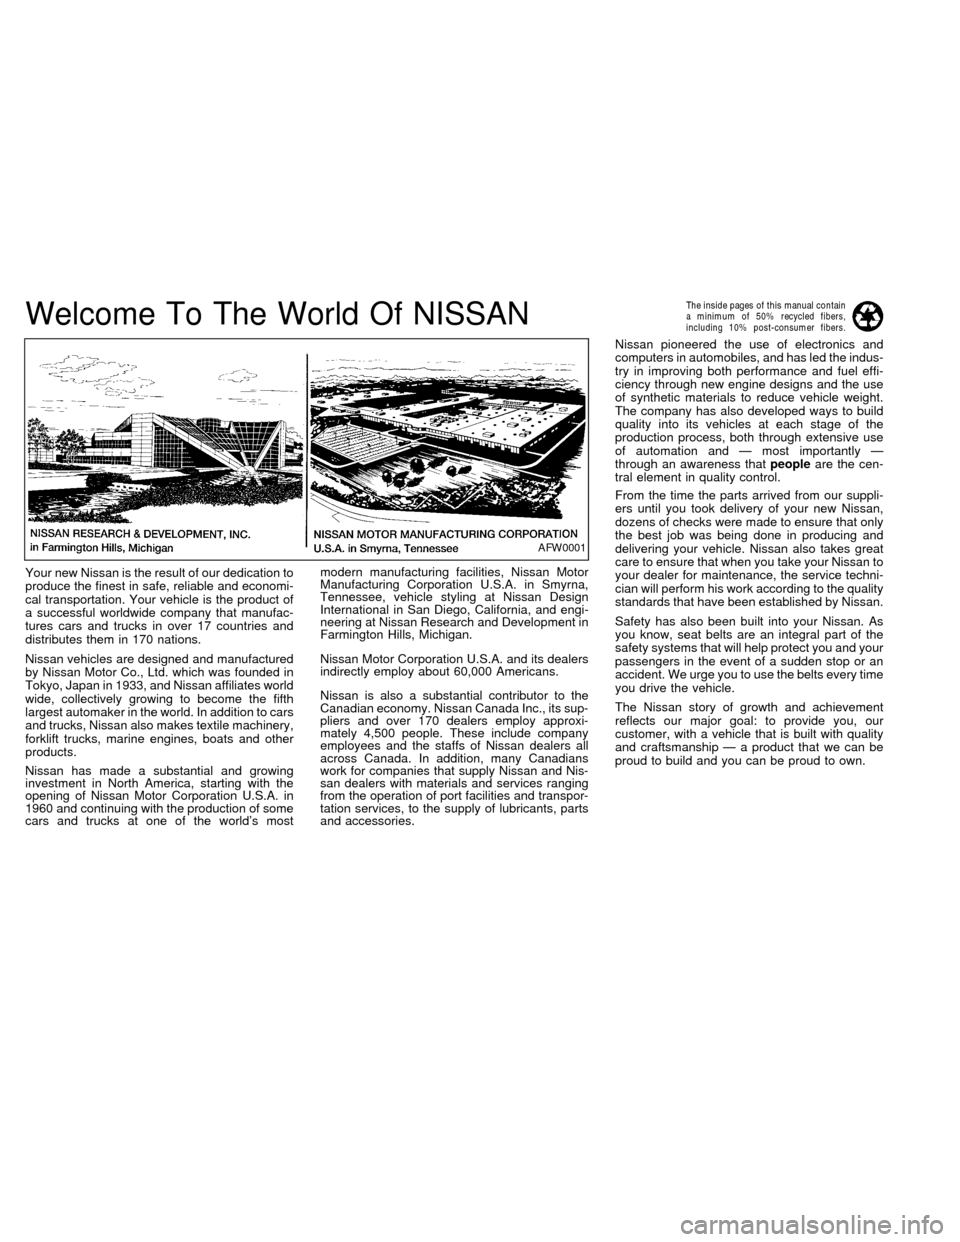 NISSAN ALTIMA 1998 L30 / 2.G Owners Manual